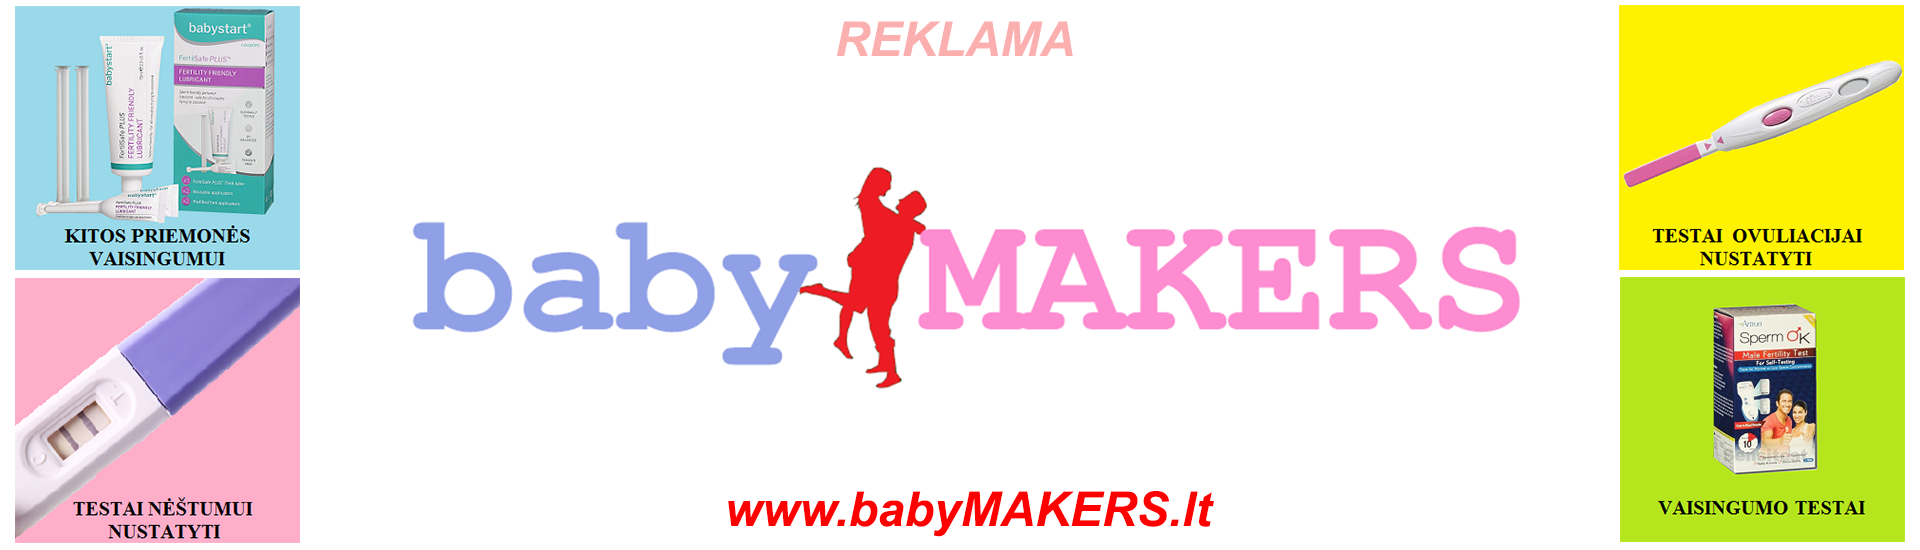 babyMAKERS.lt